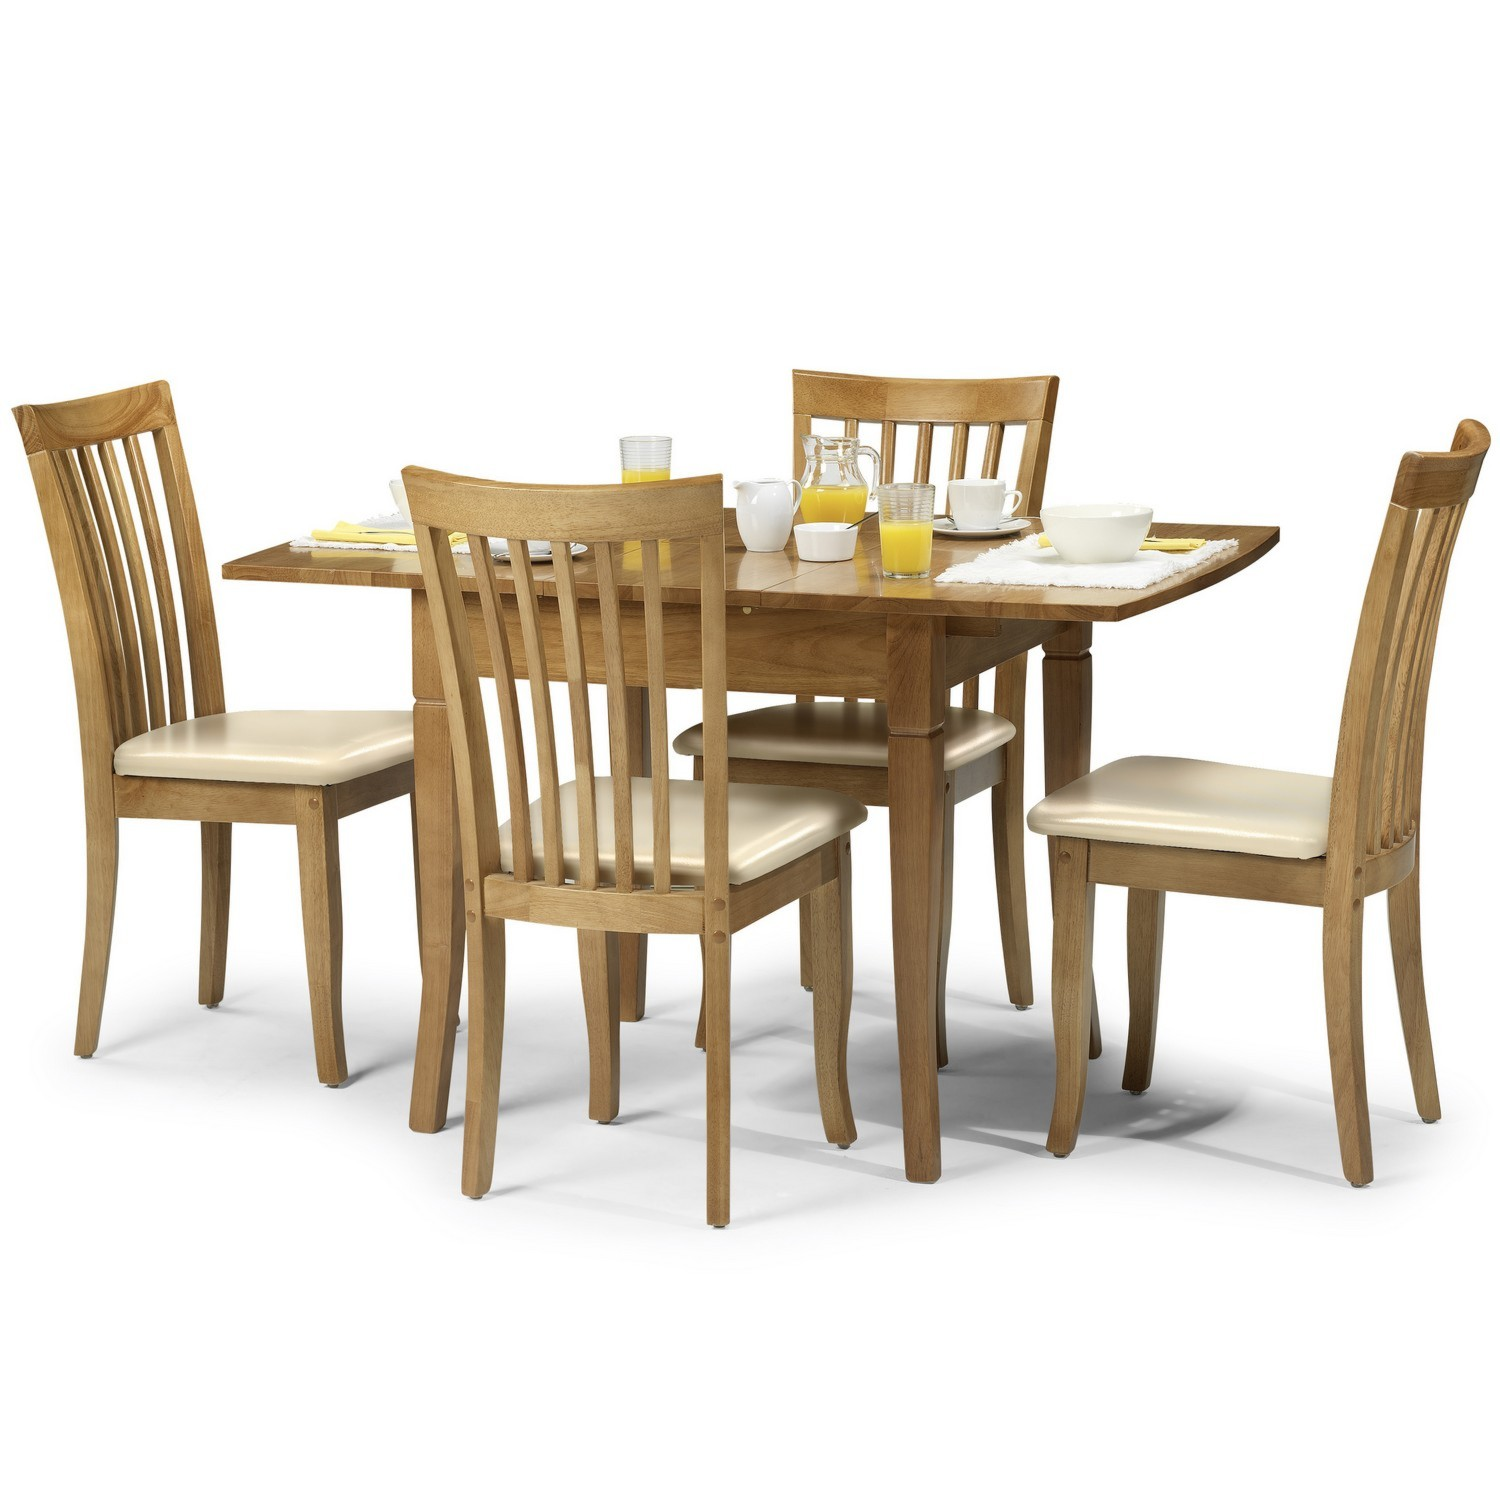 Dining Room Chairs Set Of 4 Newbury Dining Table And 4 Chairs Set